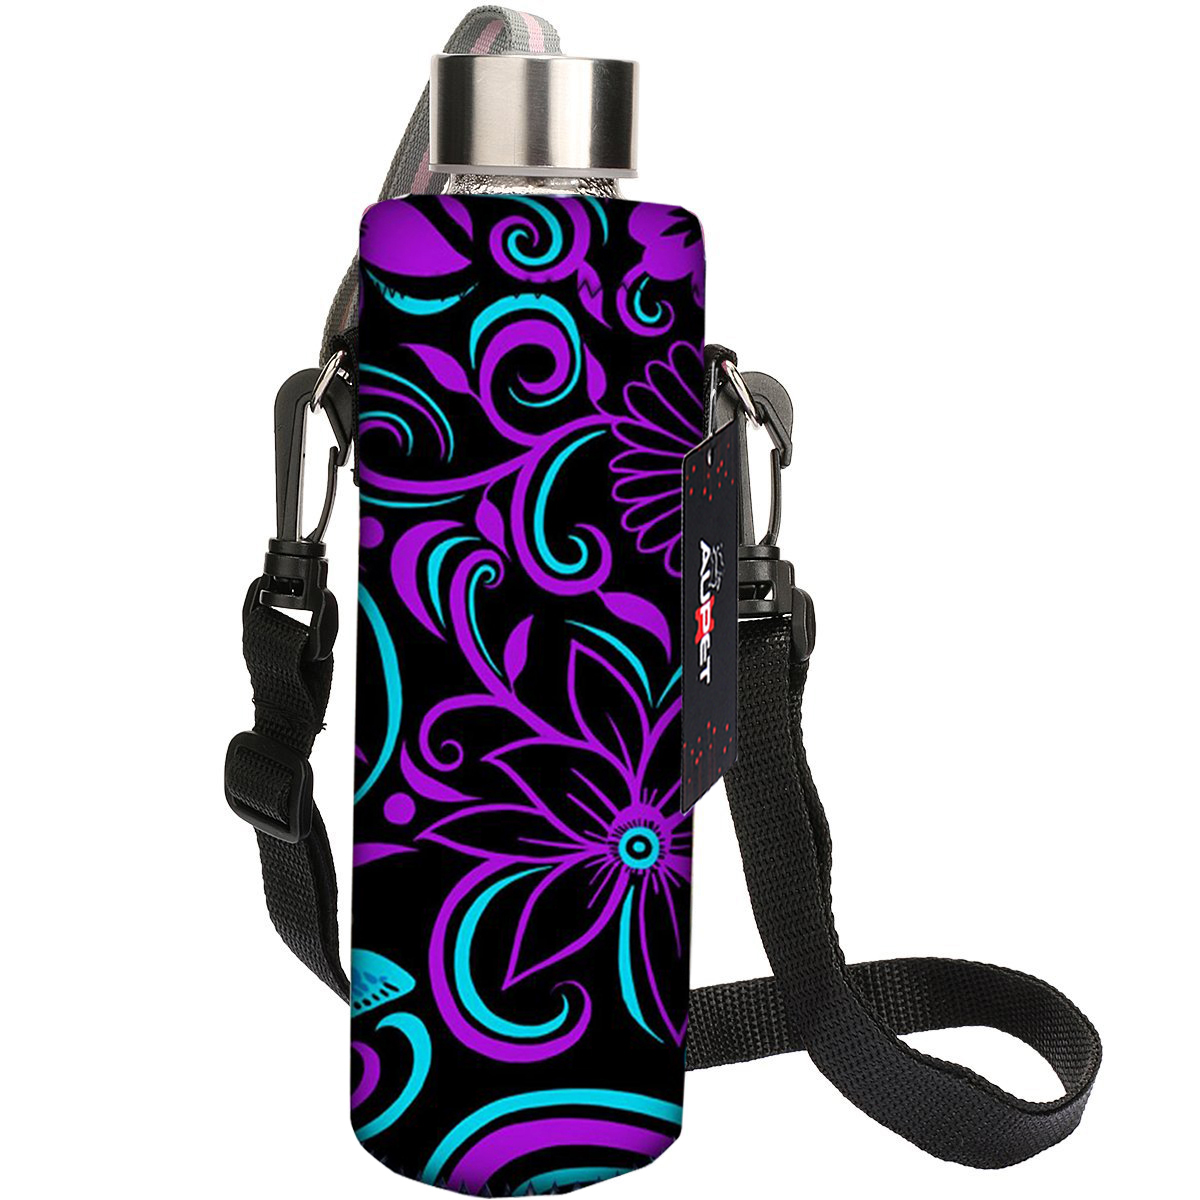 AUPET Purple Flower 750ML Insulated Water Bottle Cover Case Sleeve Pouch bag Holder + Shoulder Strap 750ML:PBC-048